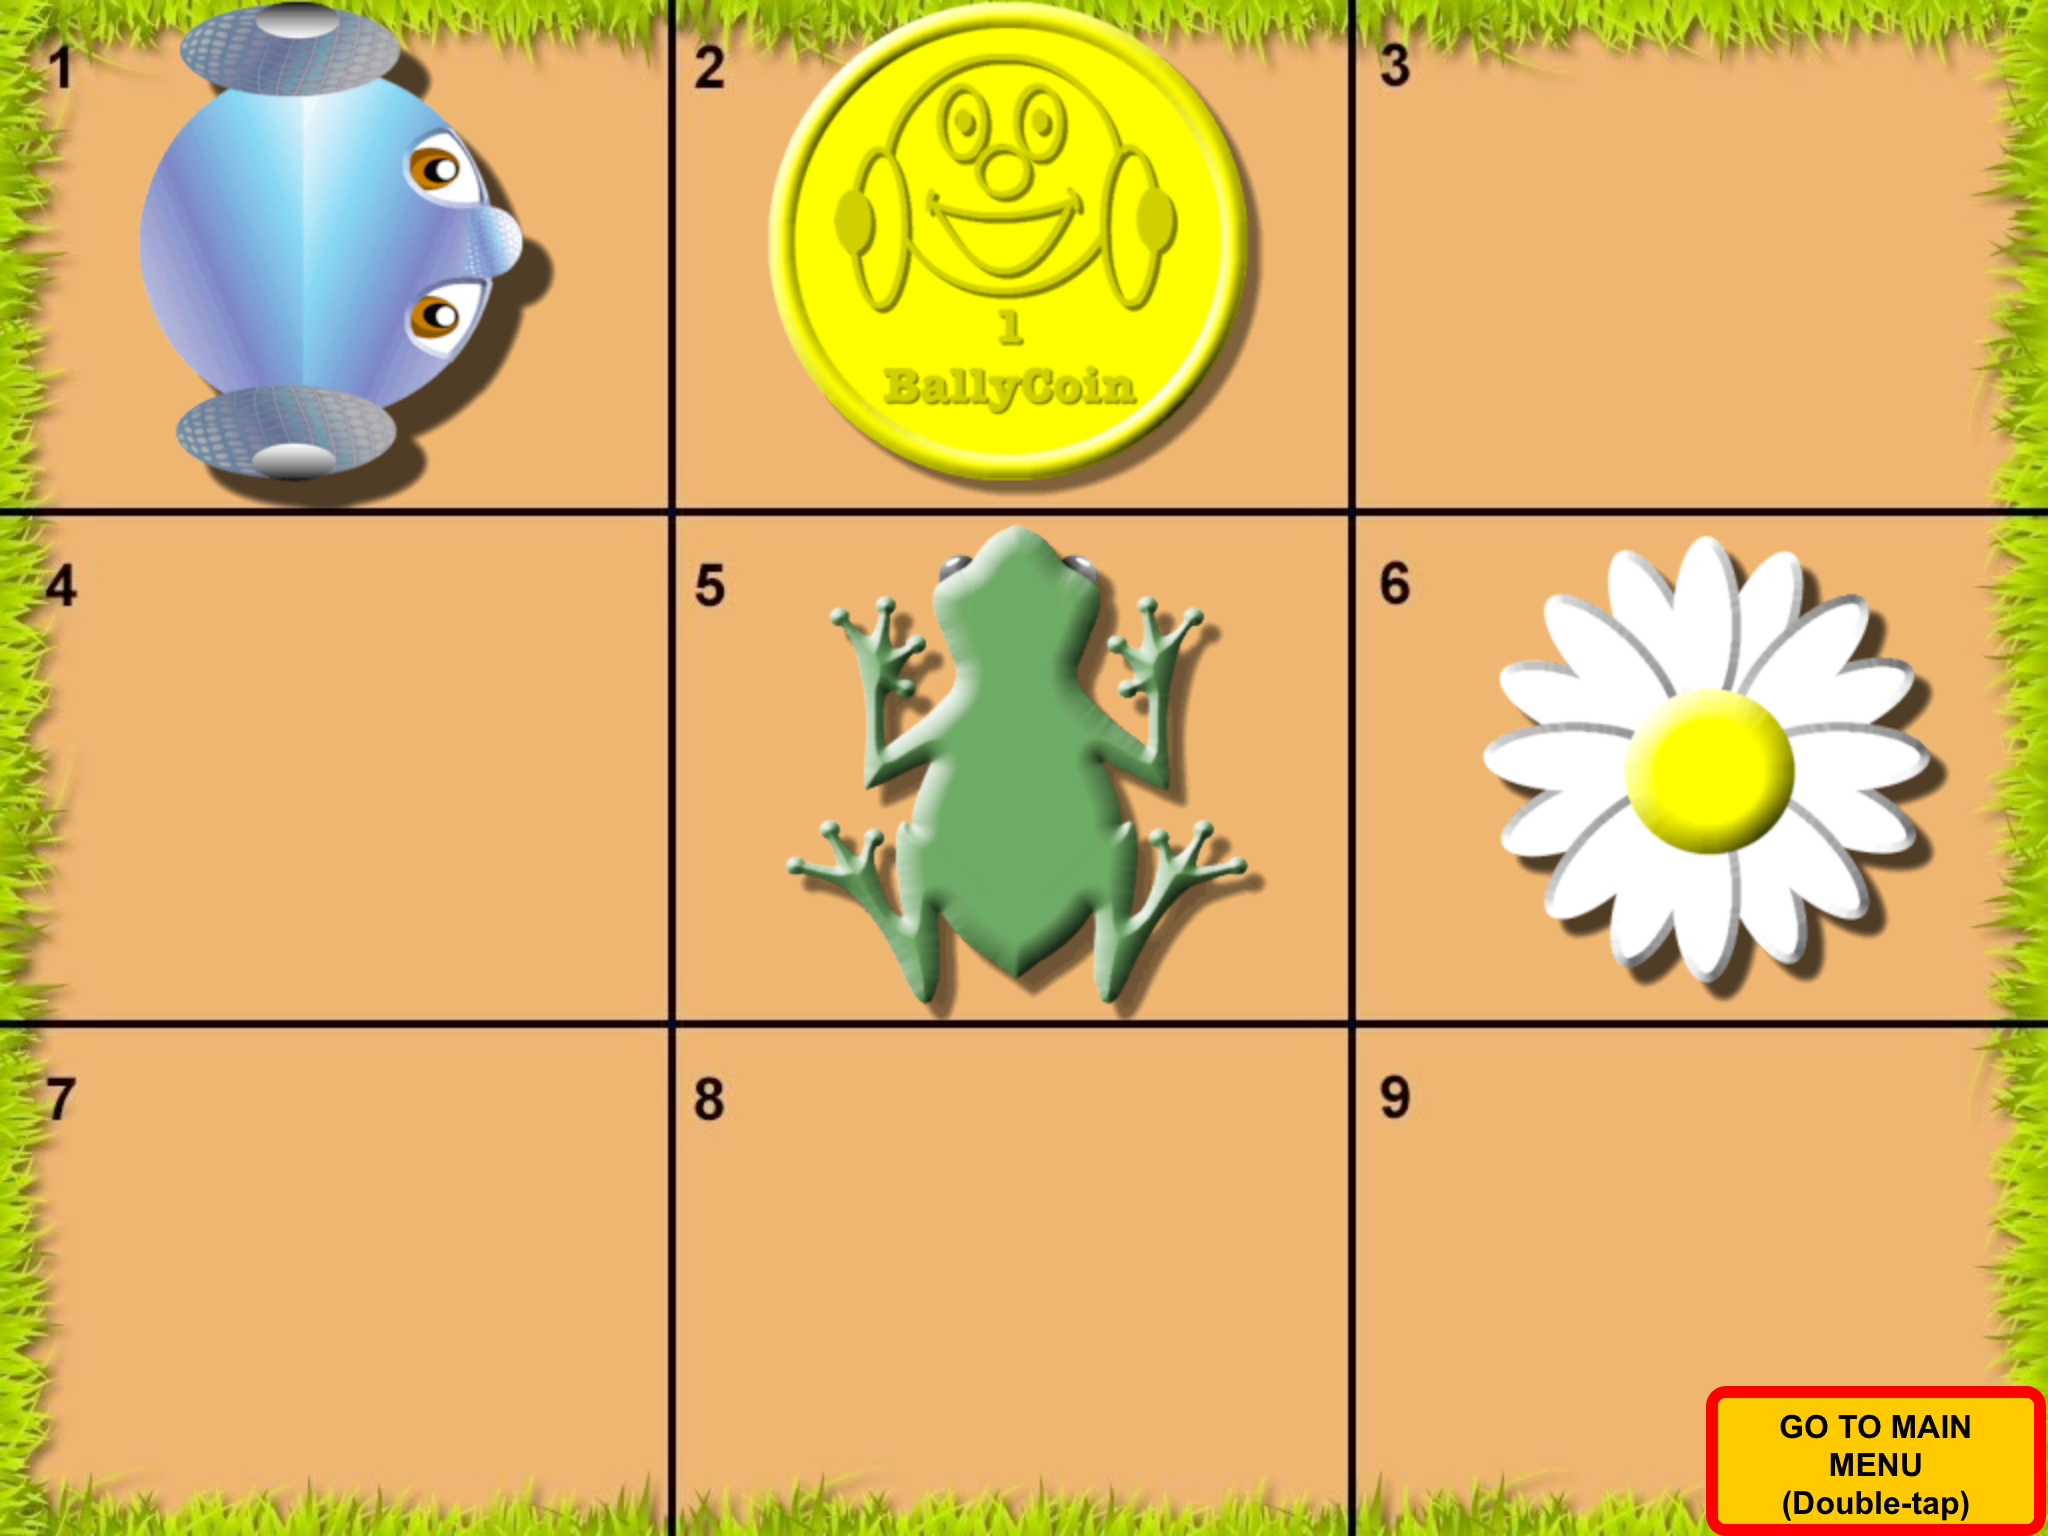 Screenshot of Code 3: 3x3 grid with Wheelie in top left, coin, frog and flower in other squares.